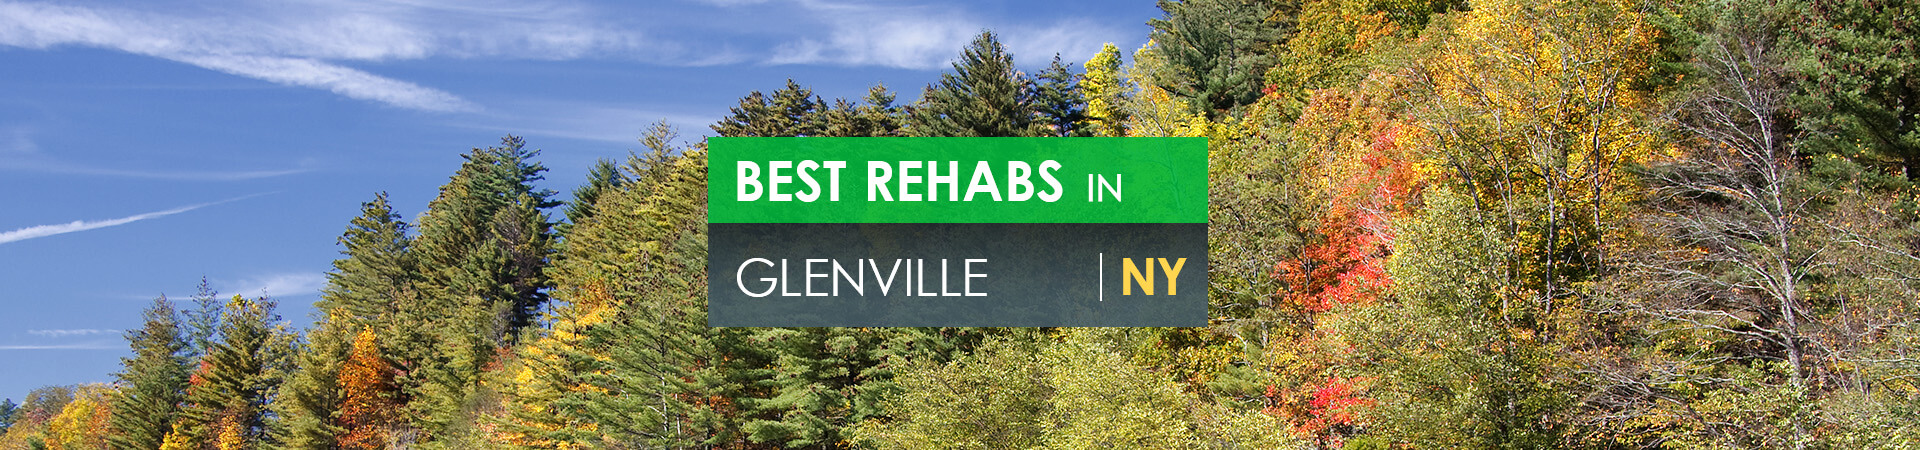 Best rehabs in Tully, NY